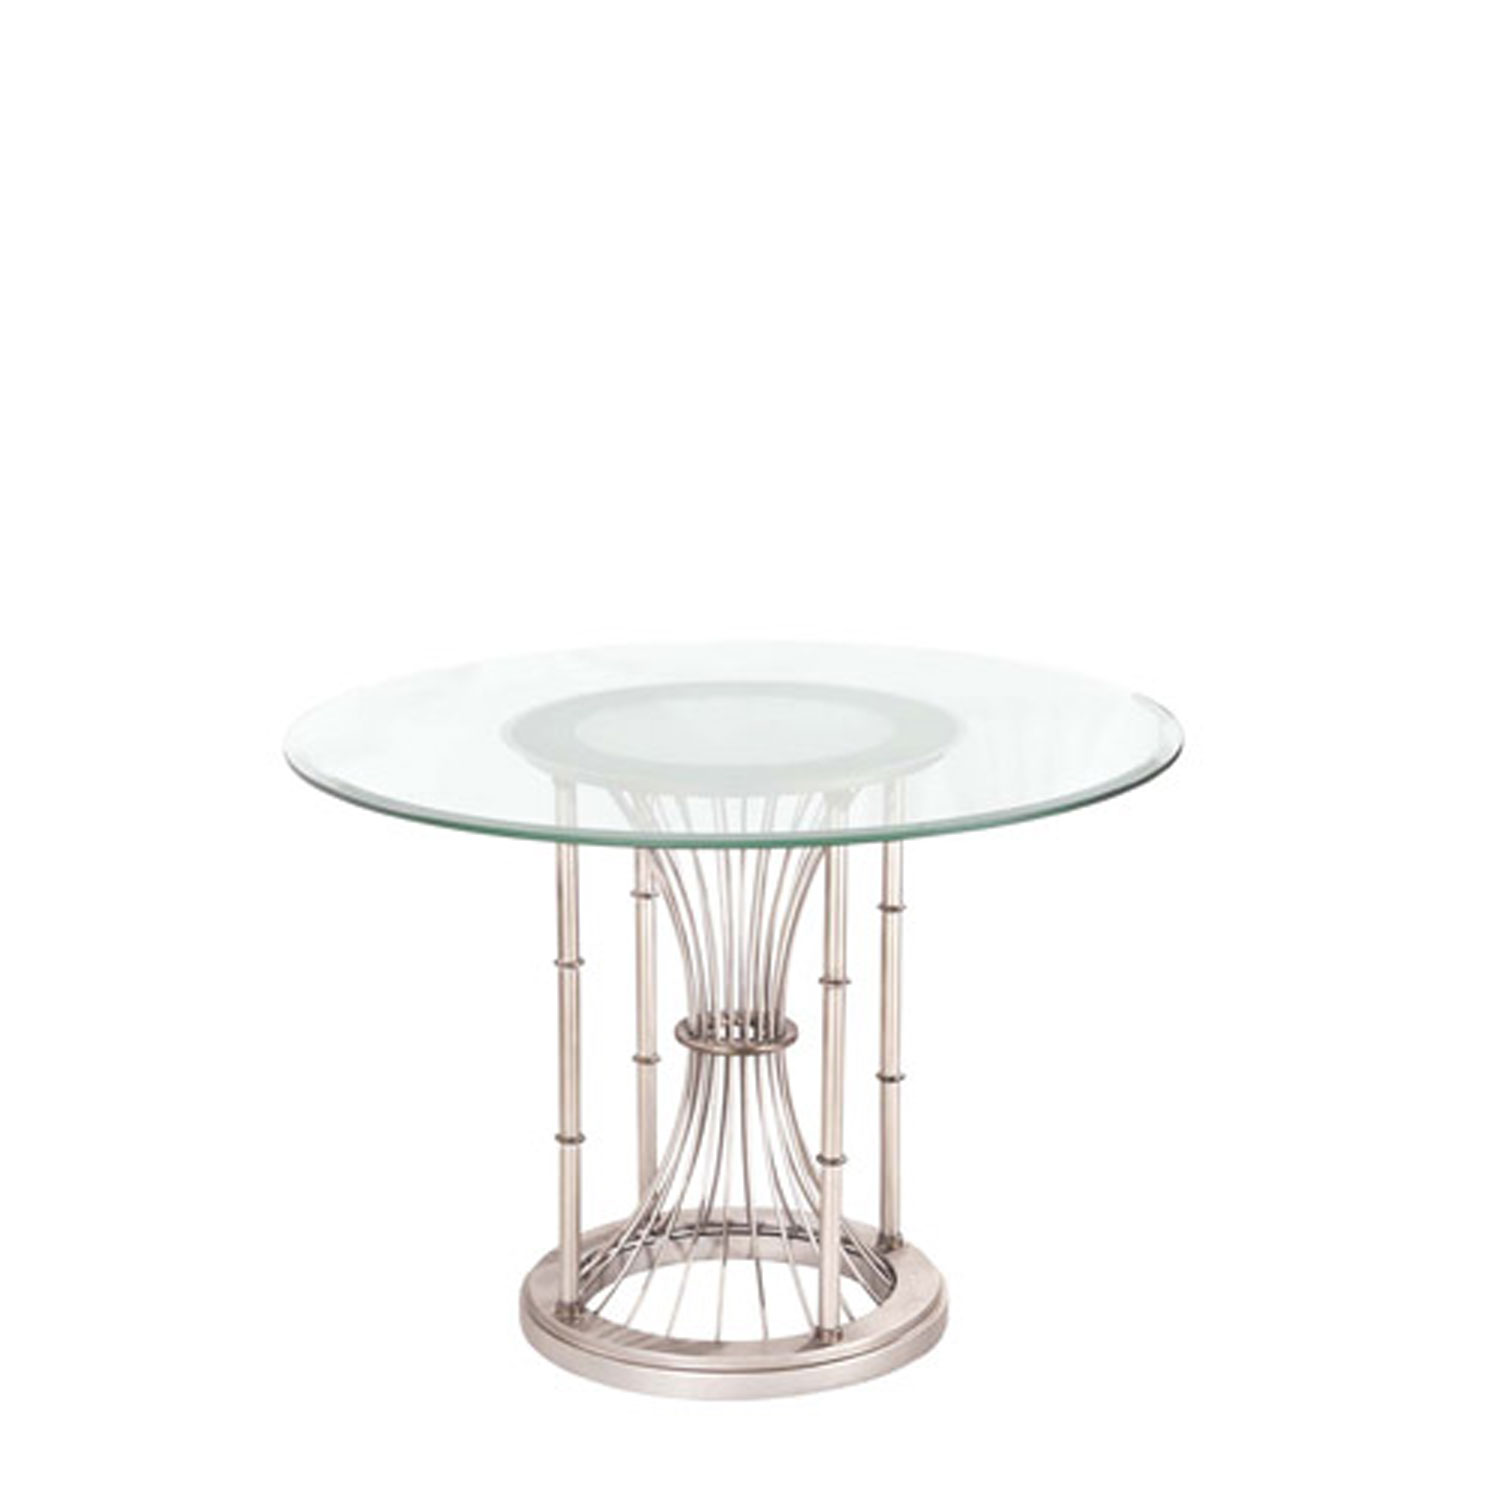 kalco lighting bal harbour pearl silver thirty inch accent table circular patio furniture black glass dining bedroom side tables high bar grey recliner wood round lamp rustic